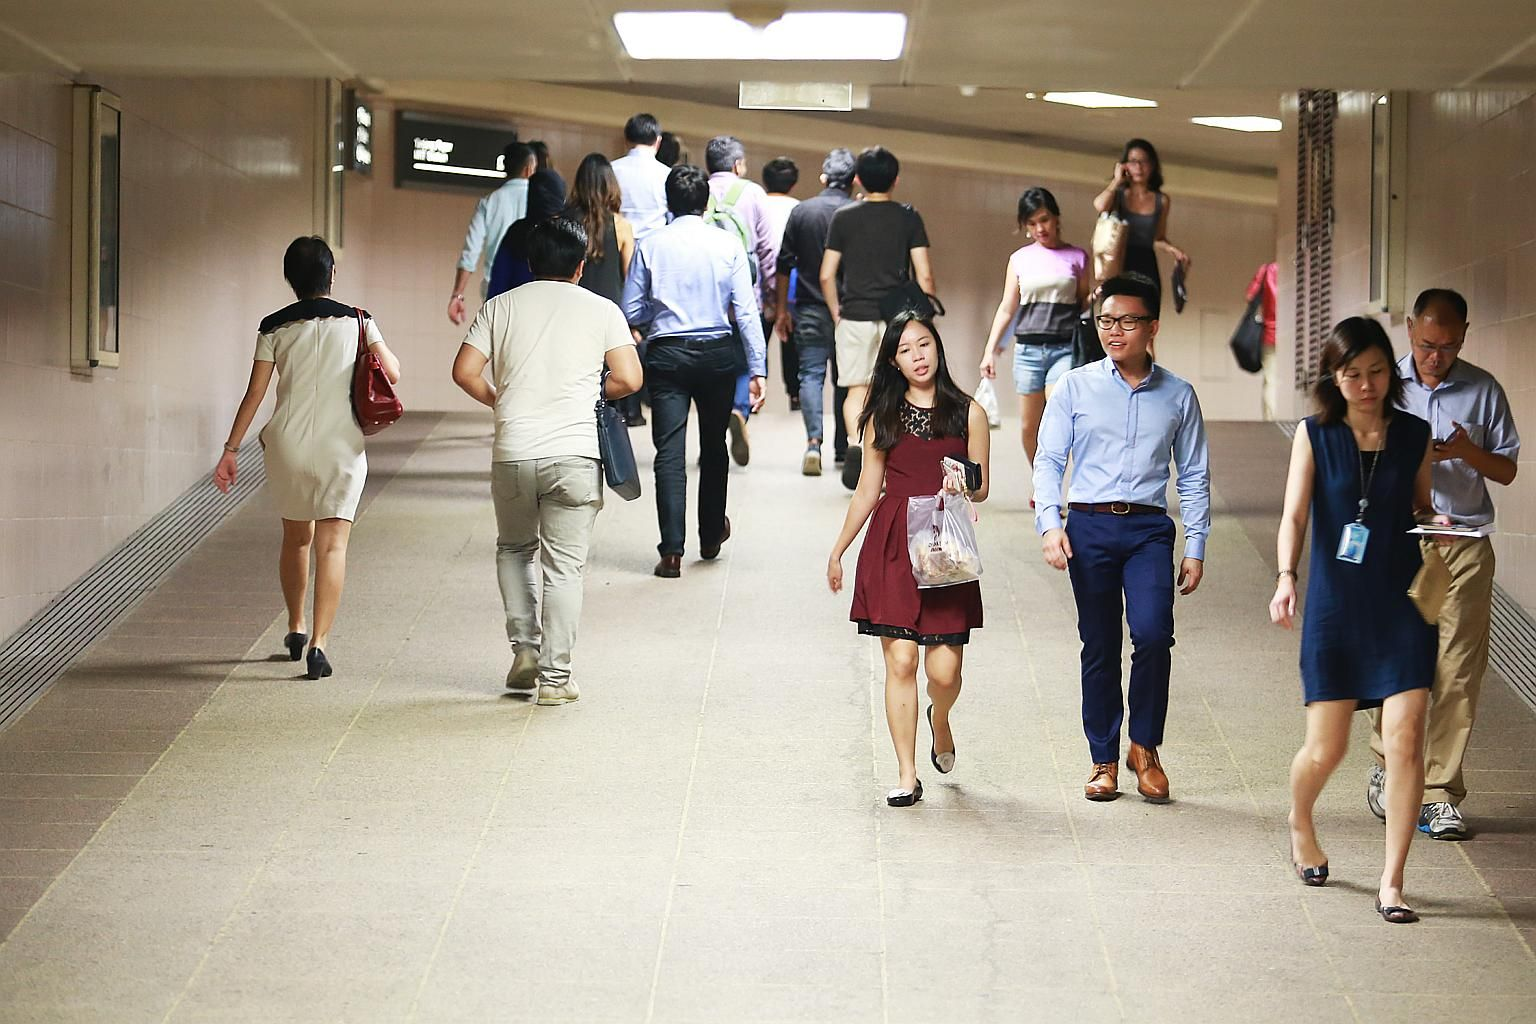 The Ministry of Manpower (MOM), which has been reiterating in recent months that it's watching closely the economic and labour market situation, on Tuesday warned it will cut the work pass privileges of employers who unfairly retrench Singaporeans.